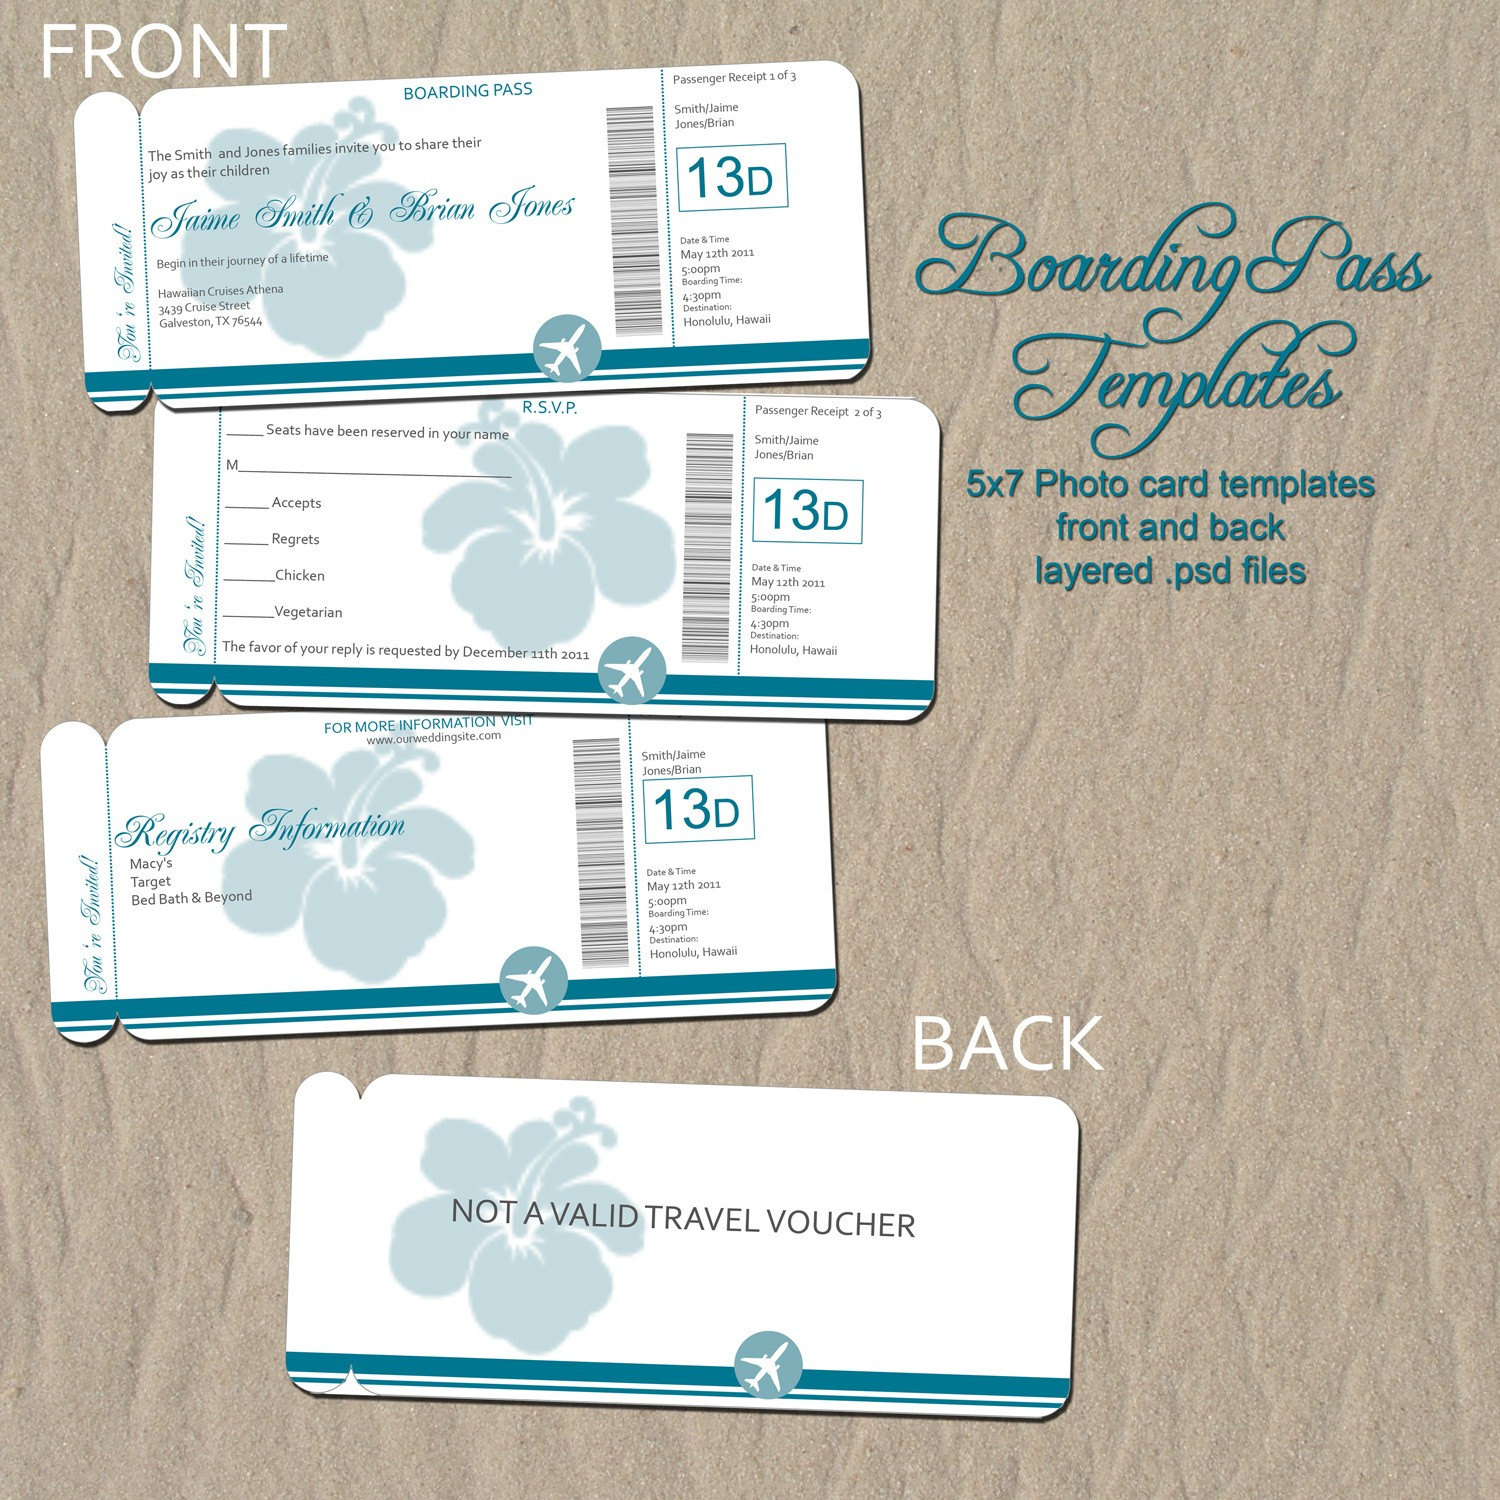 save-the-date-cards-destination-wedding-save-the-date-how-to-get-ex-boyfriend-cool-collection-of-save-the-date-etiquette-wording